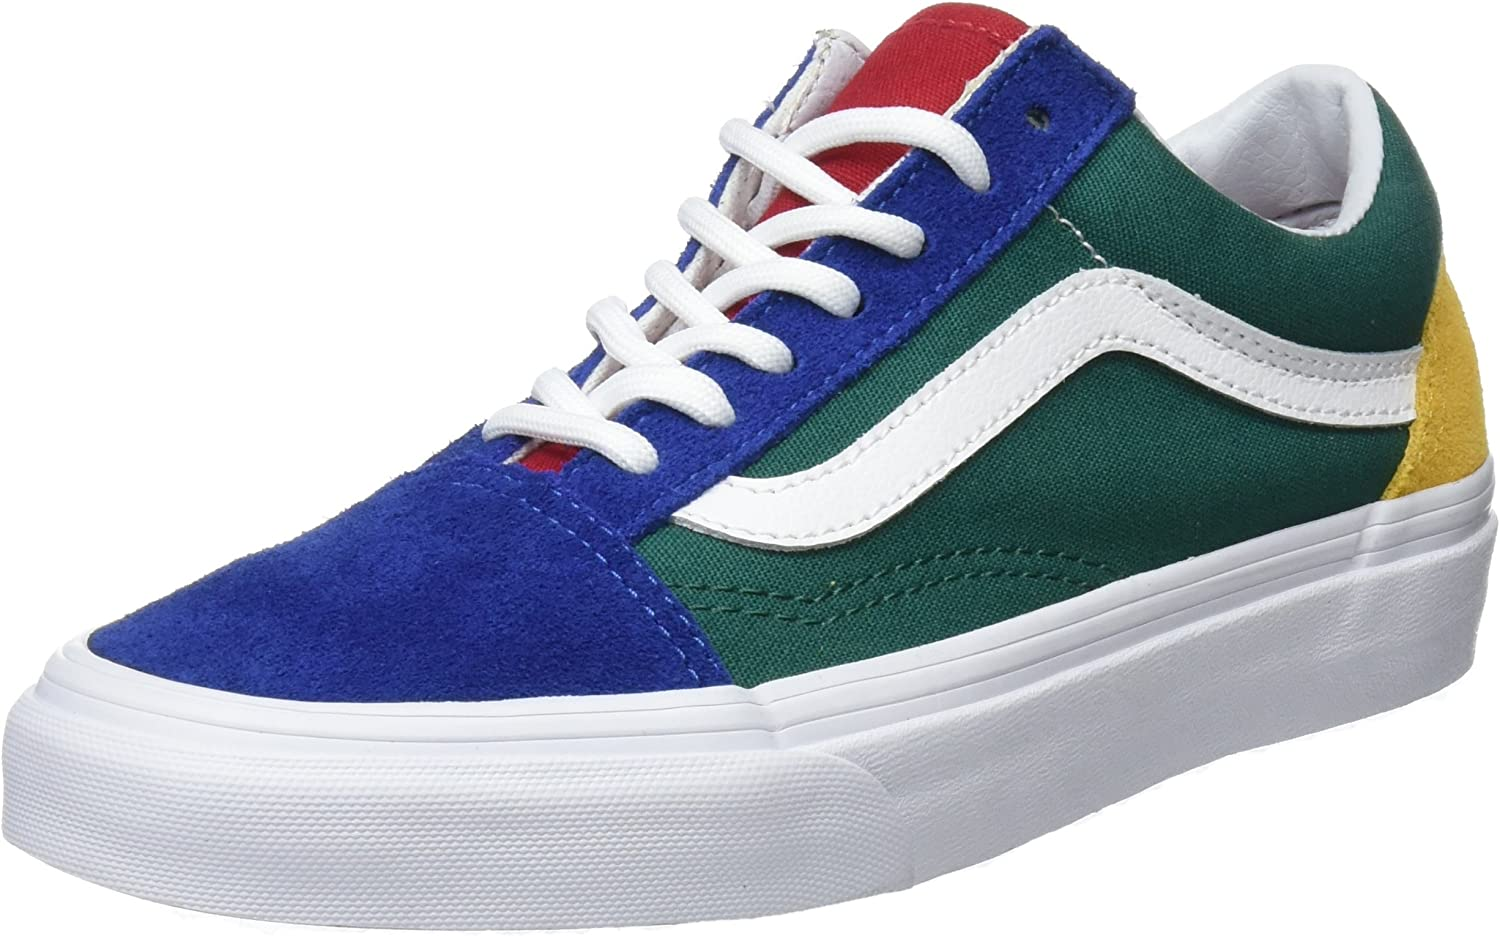 Vans Unisex Adults Old Skool Trainers, Multicolour Vans Blue Yacht Club Blue Green Yellow R1Q , 4.5 UK 37 EU